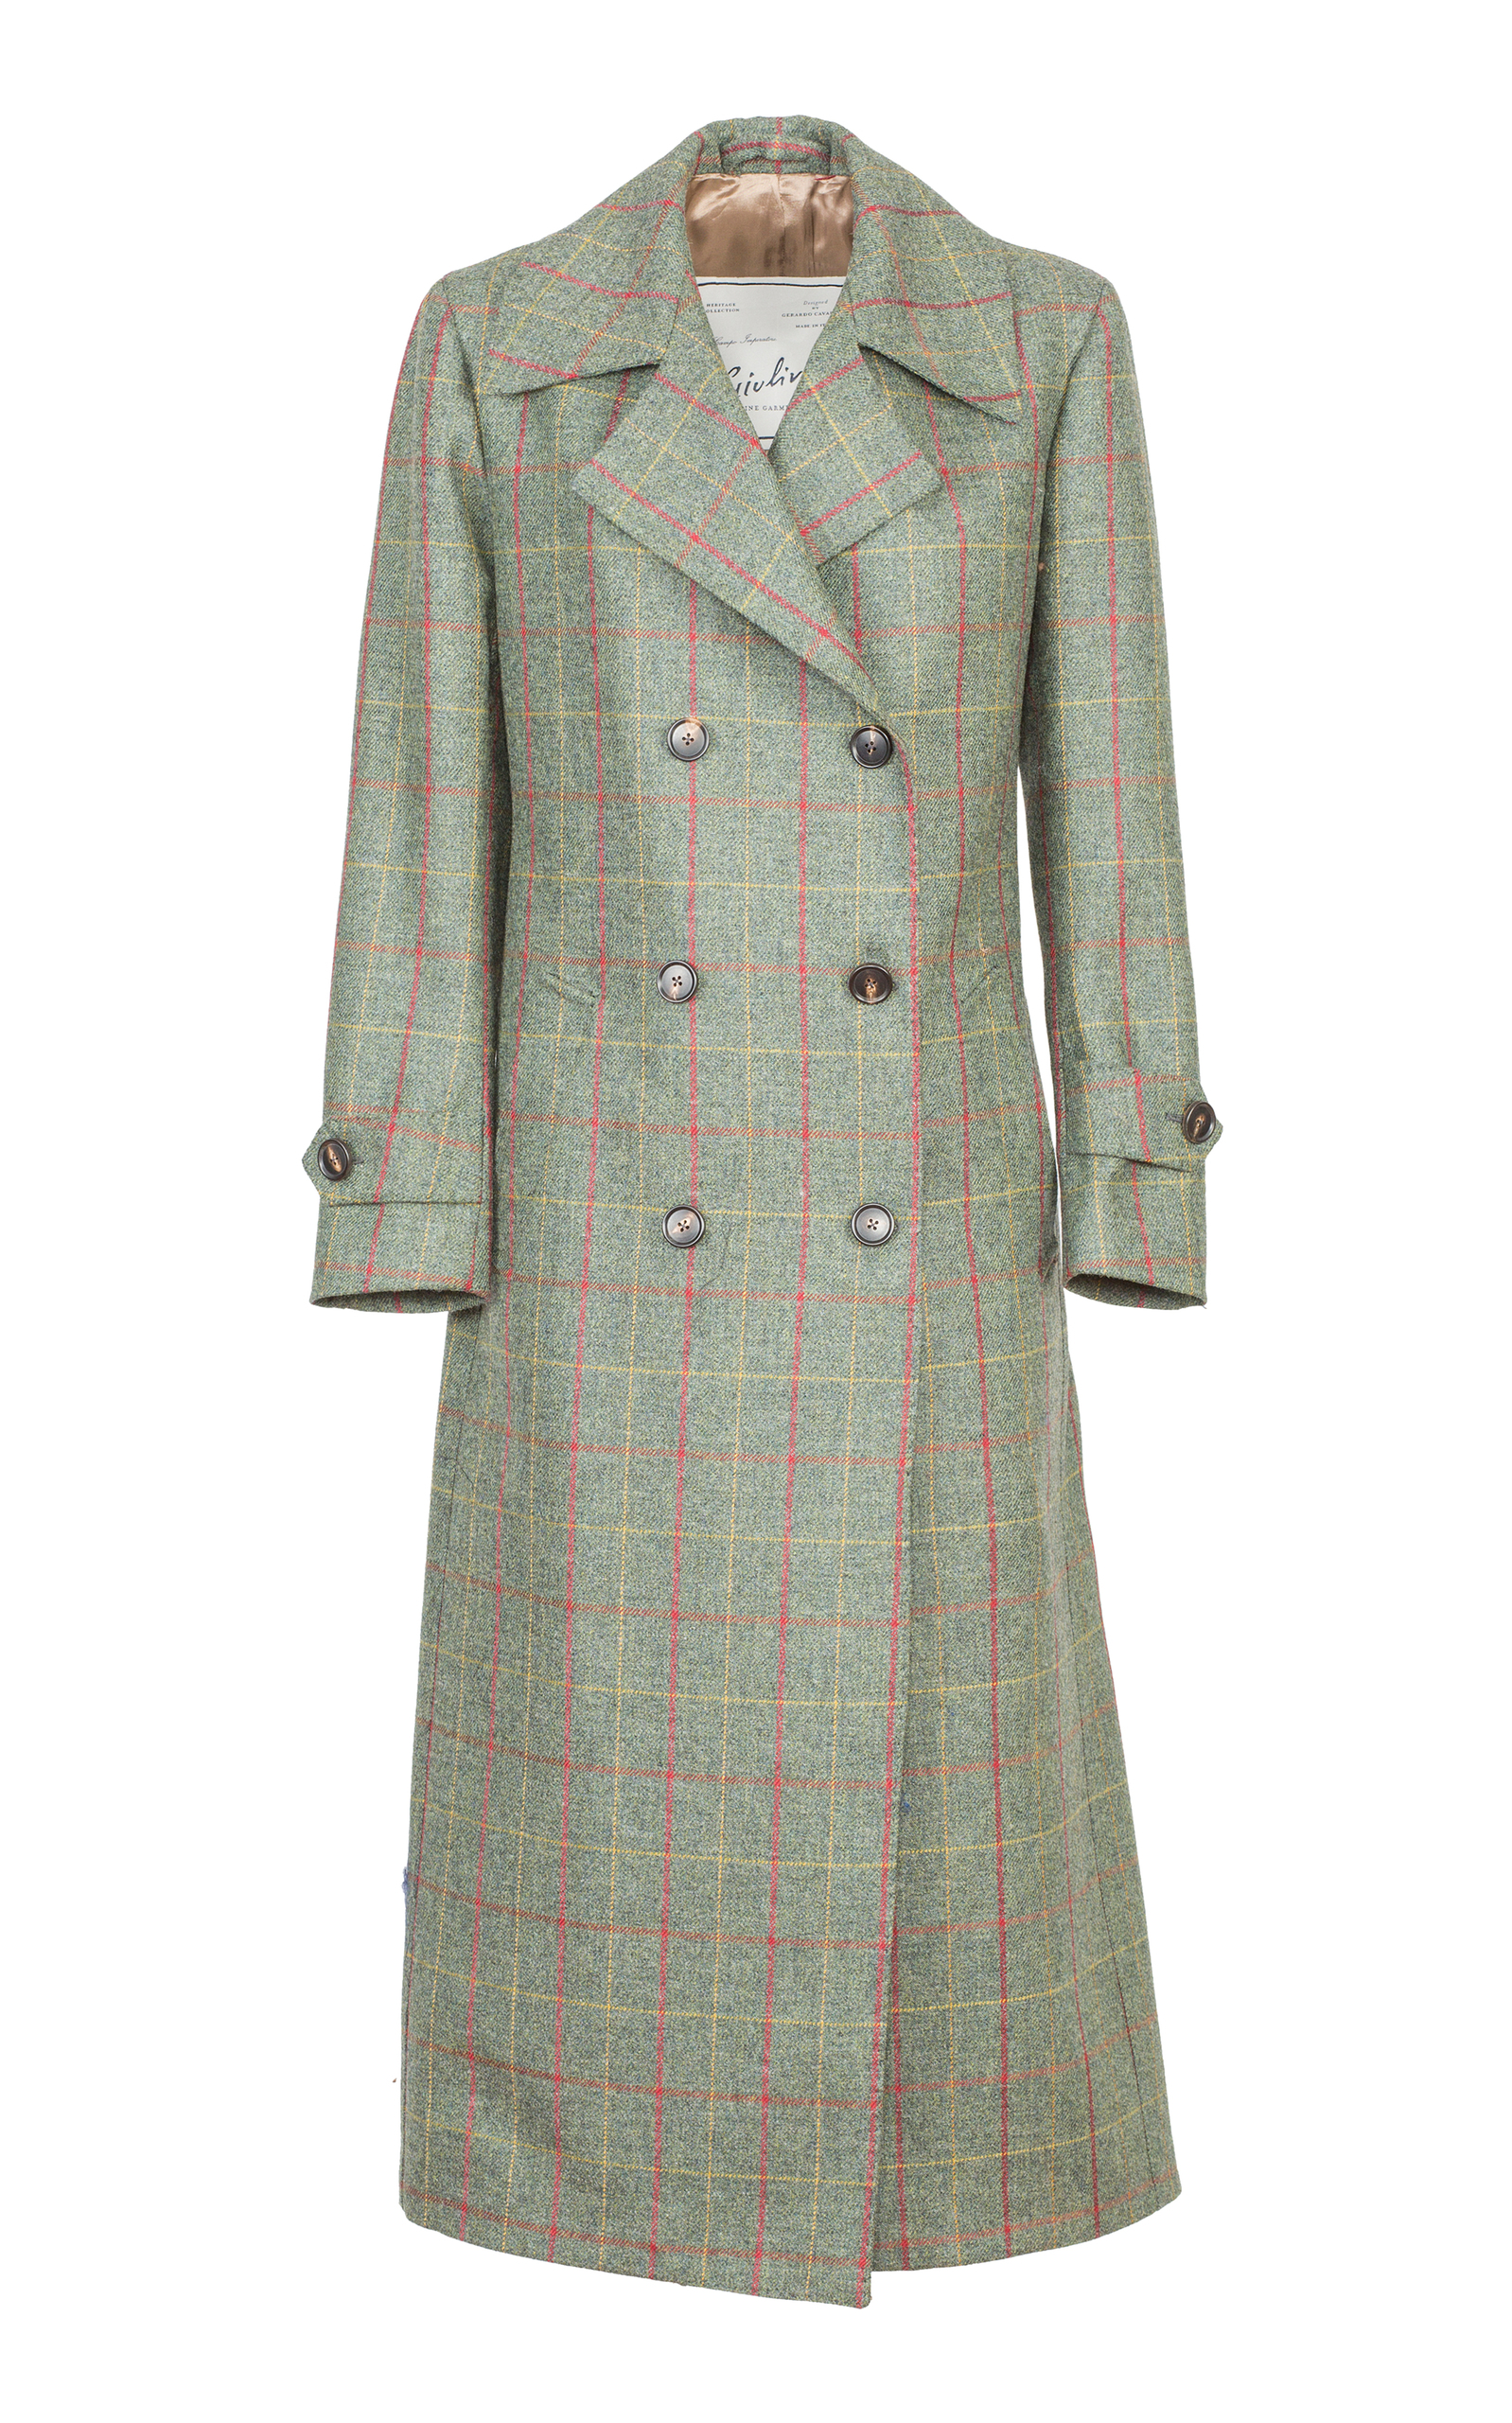 GIULIVA HERITAGE COLLECTION Christie Checked Wool Trench Coat in Green